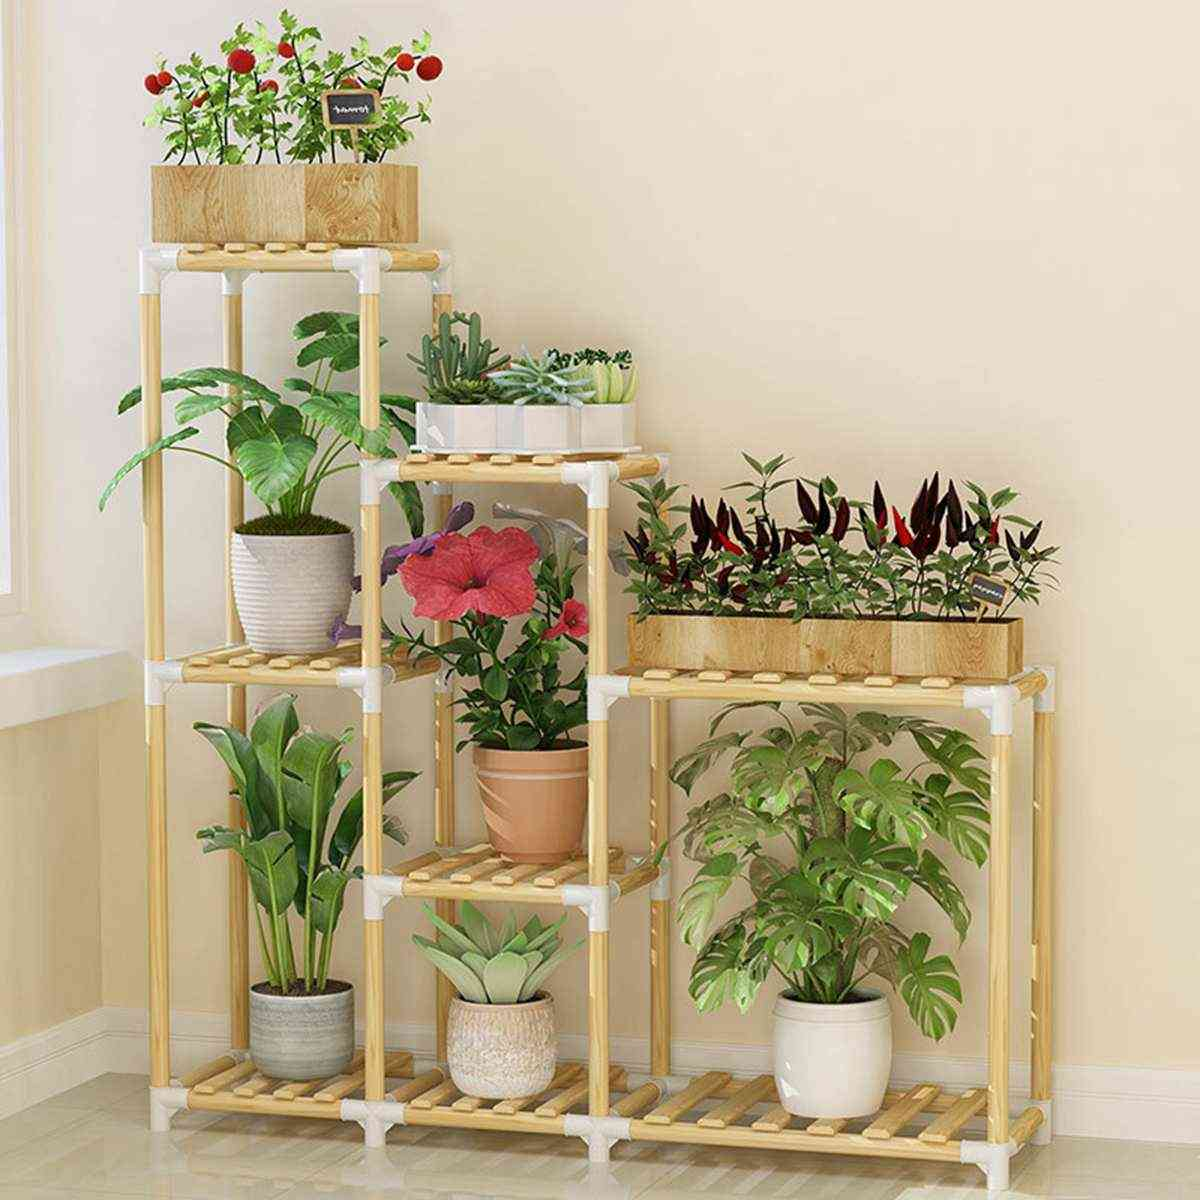 Wooden Flower Rack Plant Stand Multi-layer Shelves Balcony Coffee Bar Indoor Garden Wood Plant